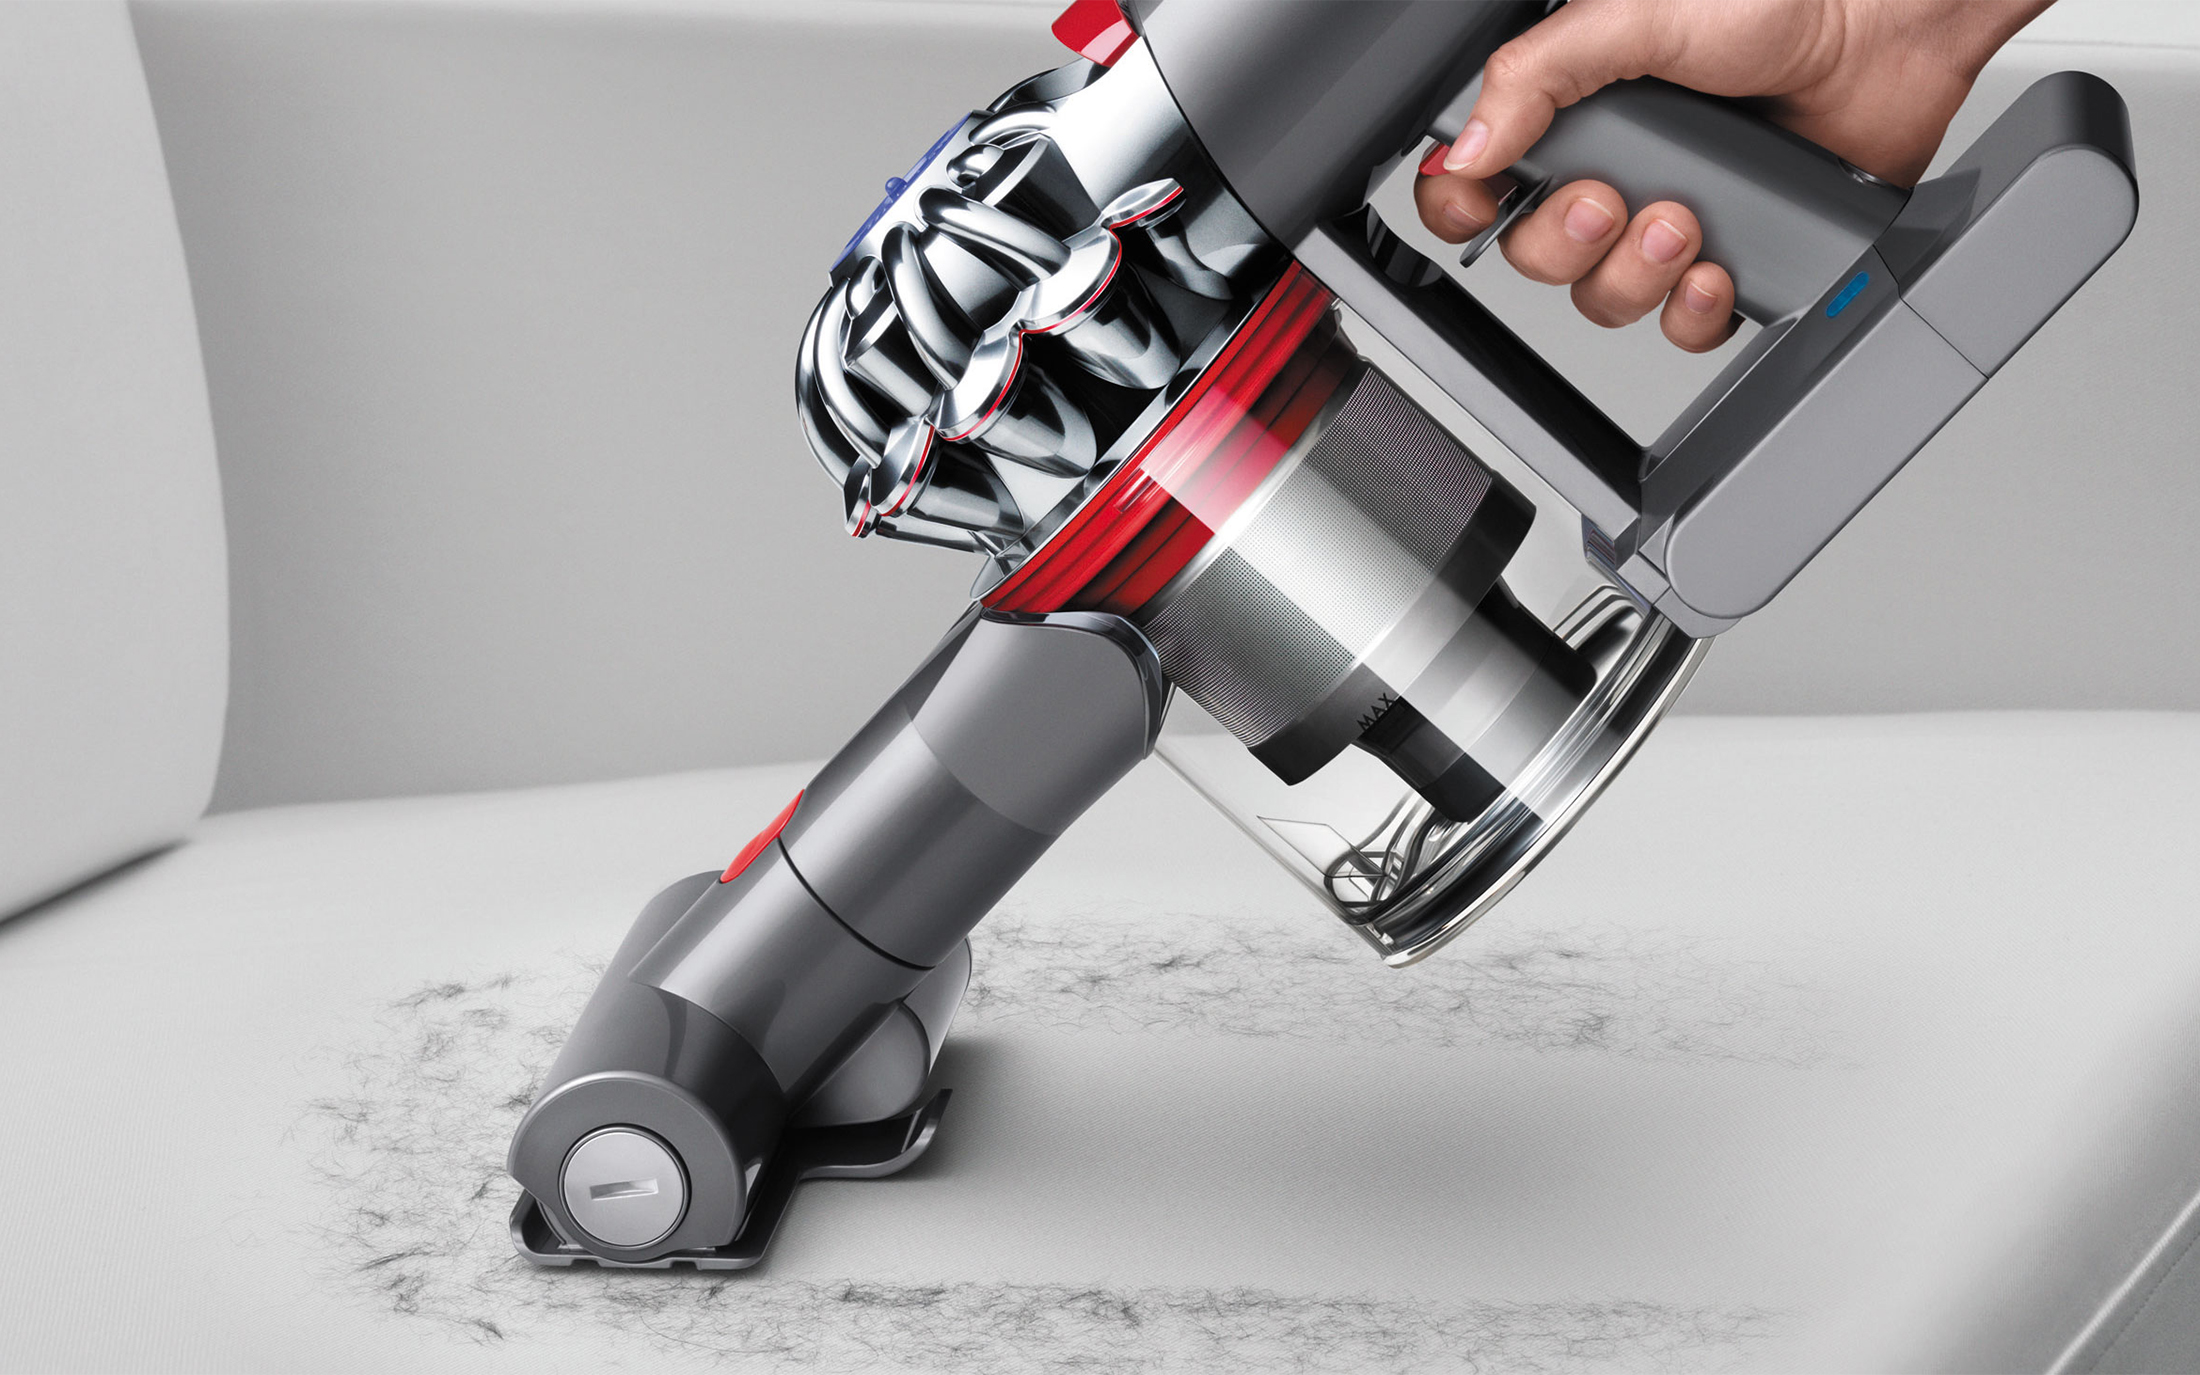 Quintessentially British Brands The Dyson Brand Cleans Up